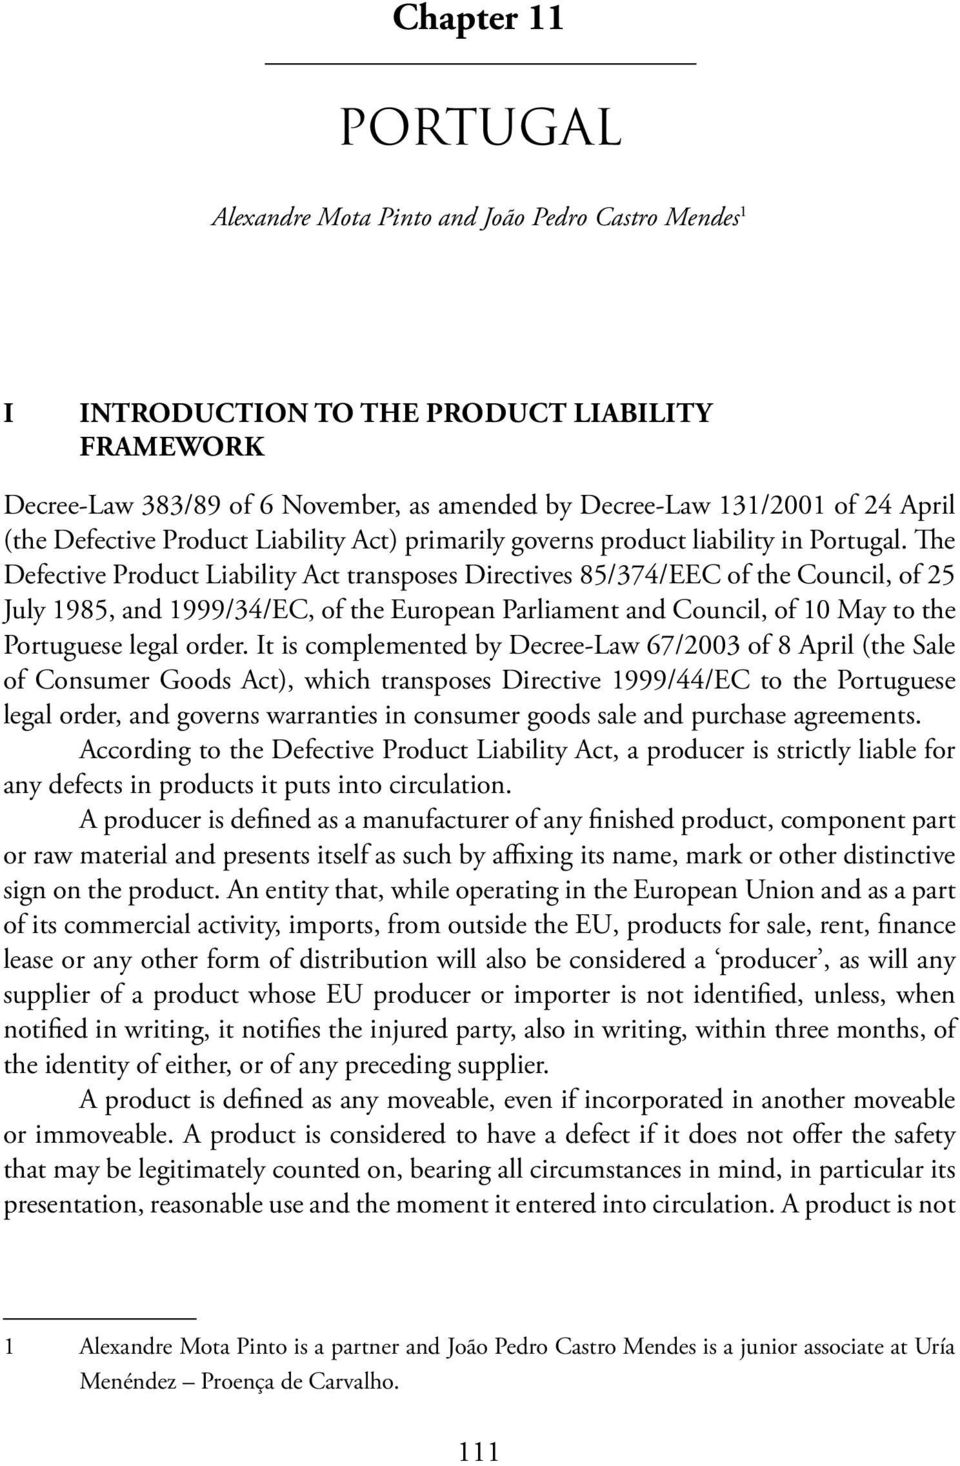 The Defective Product Liability Act transposes Directives 85/374/EEC of the Council, of 25 July 1985, and 1999/34/EC, of the European Parliament and Council, of 10 May to the Portuguese legal order.